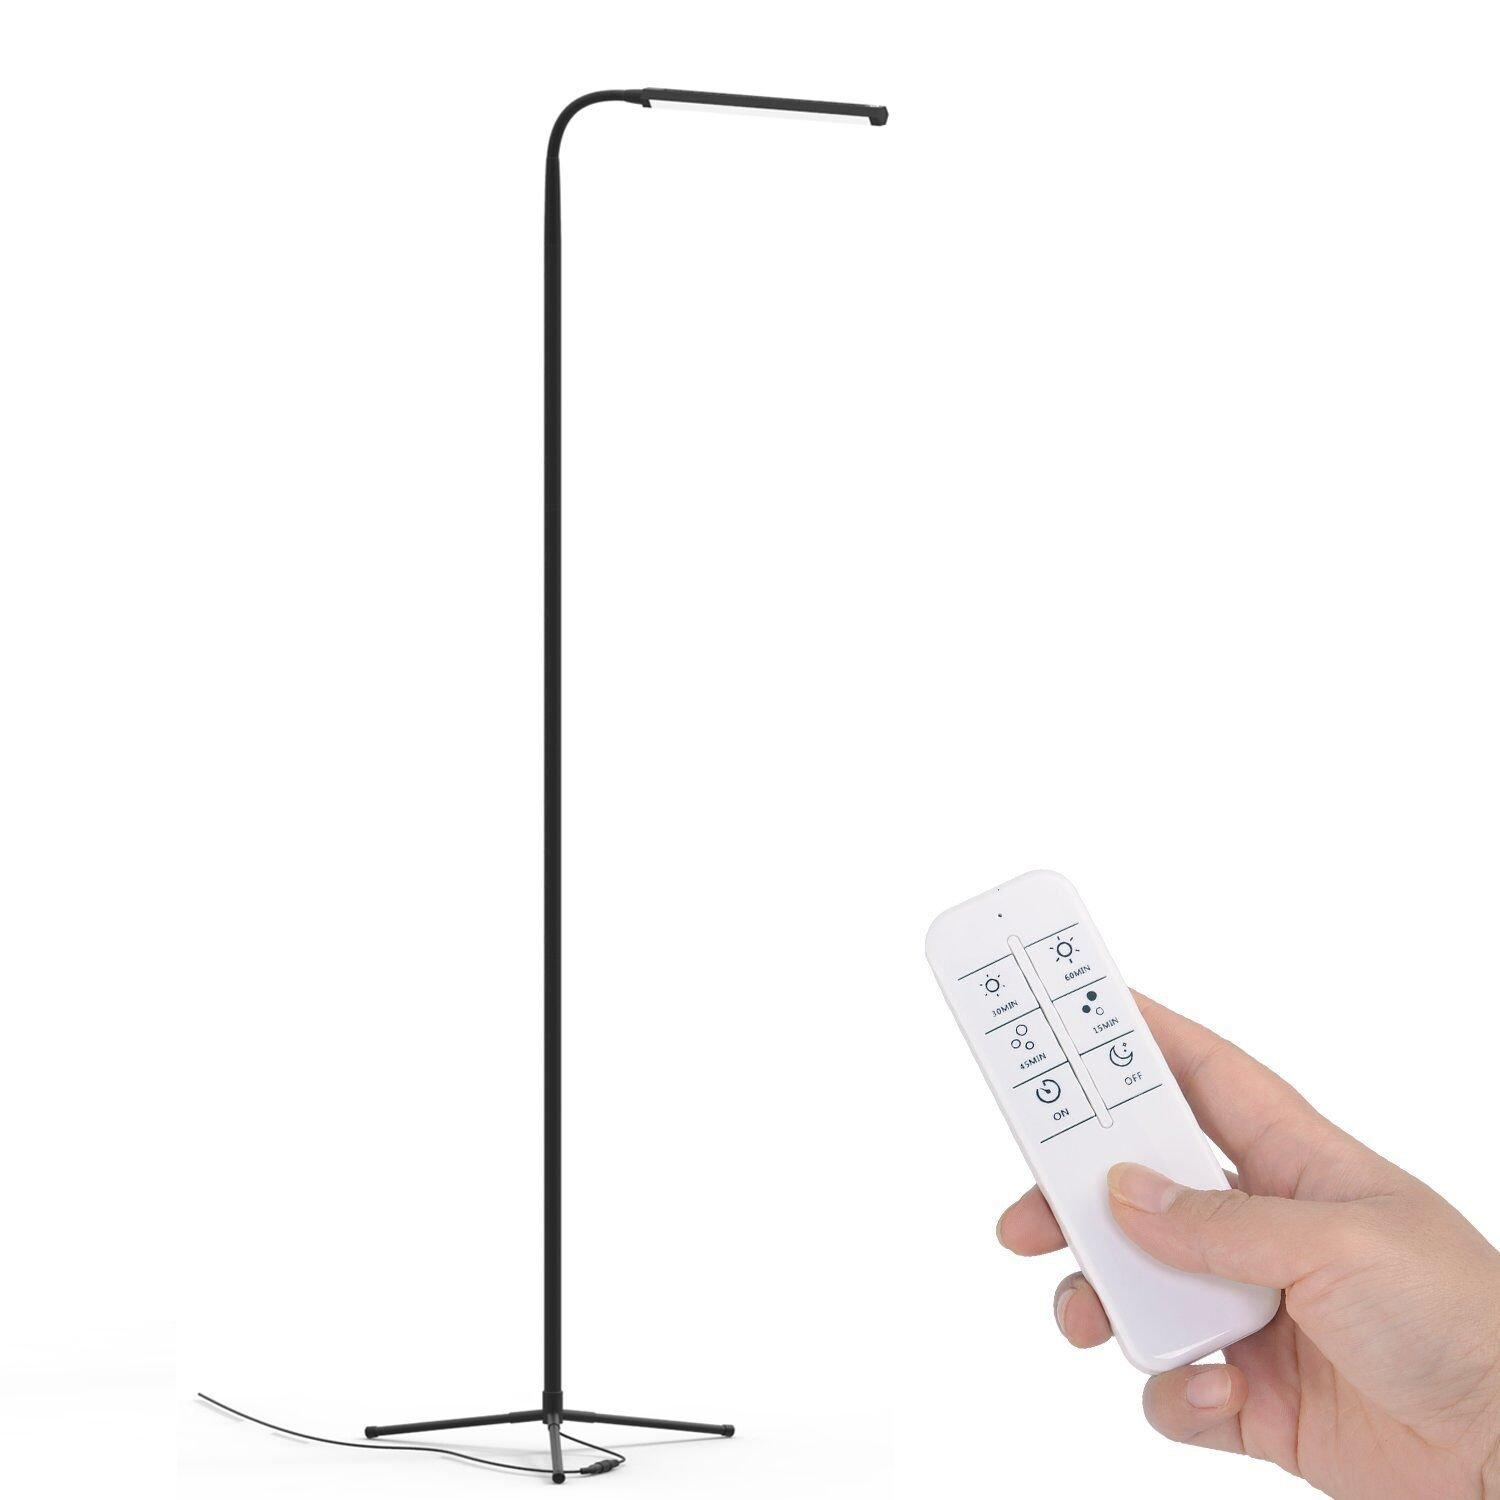 F9 Modern Touch Led Standing Floor Lamp Reading For Living Room Bedroom With Remote Control 12 Levels Dimmable 3000-6000k Black By Meiji Store.